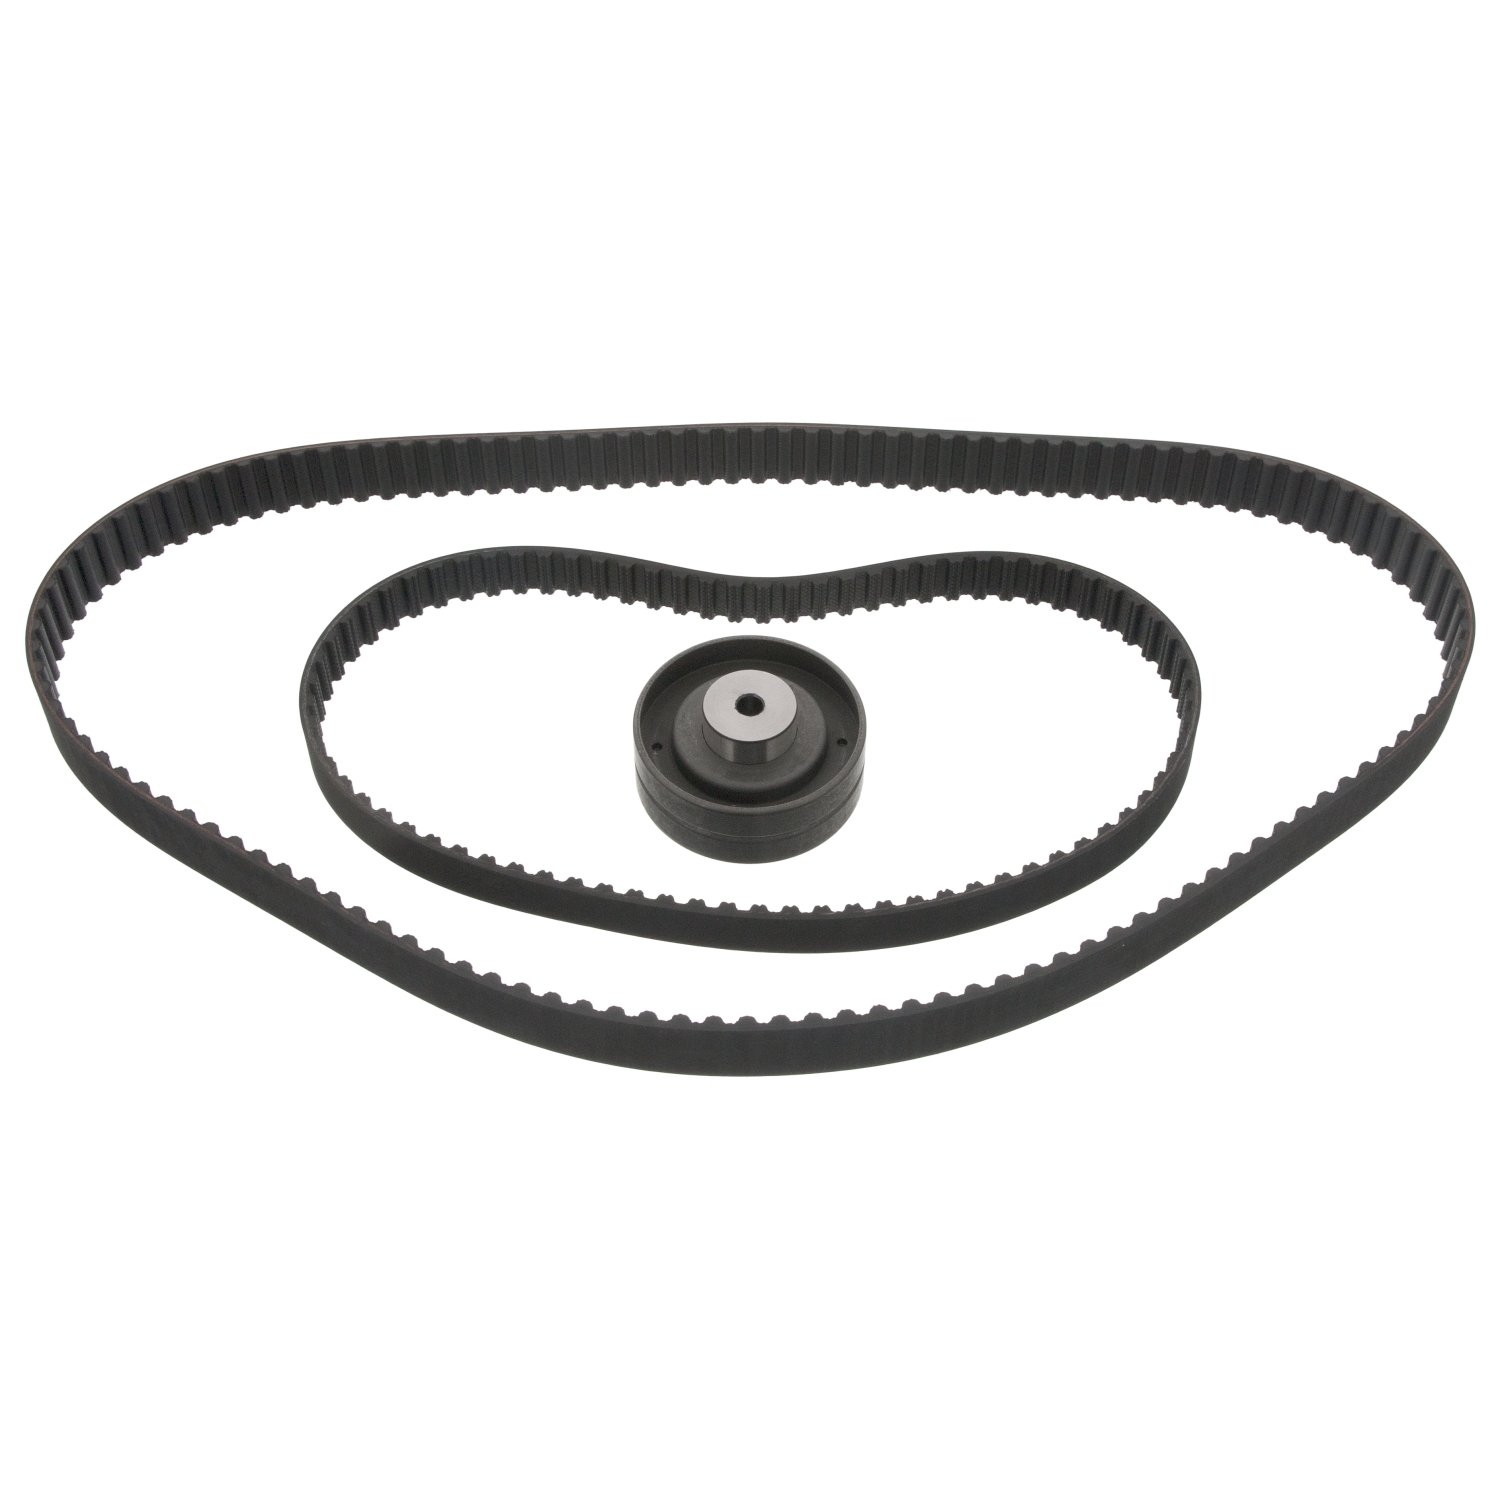 febi bilstein 14636 timing belt kit - Pack of 1